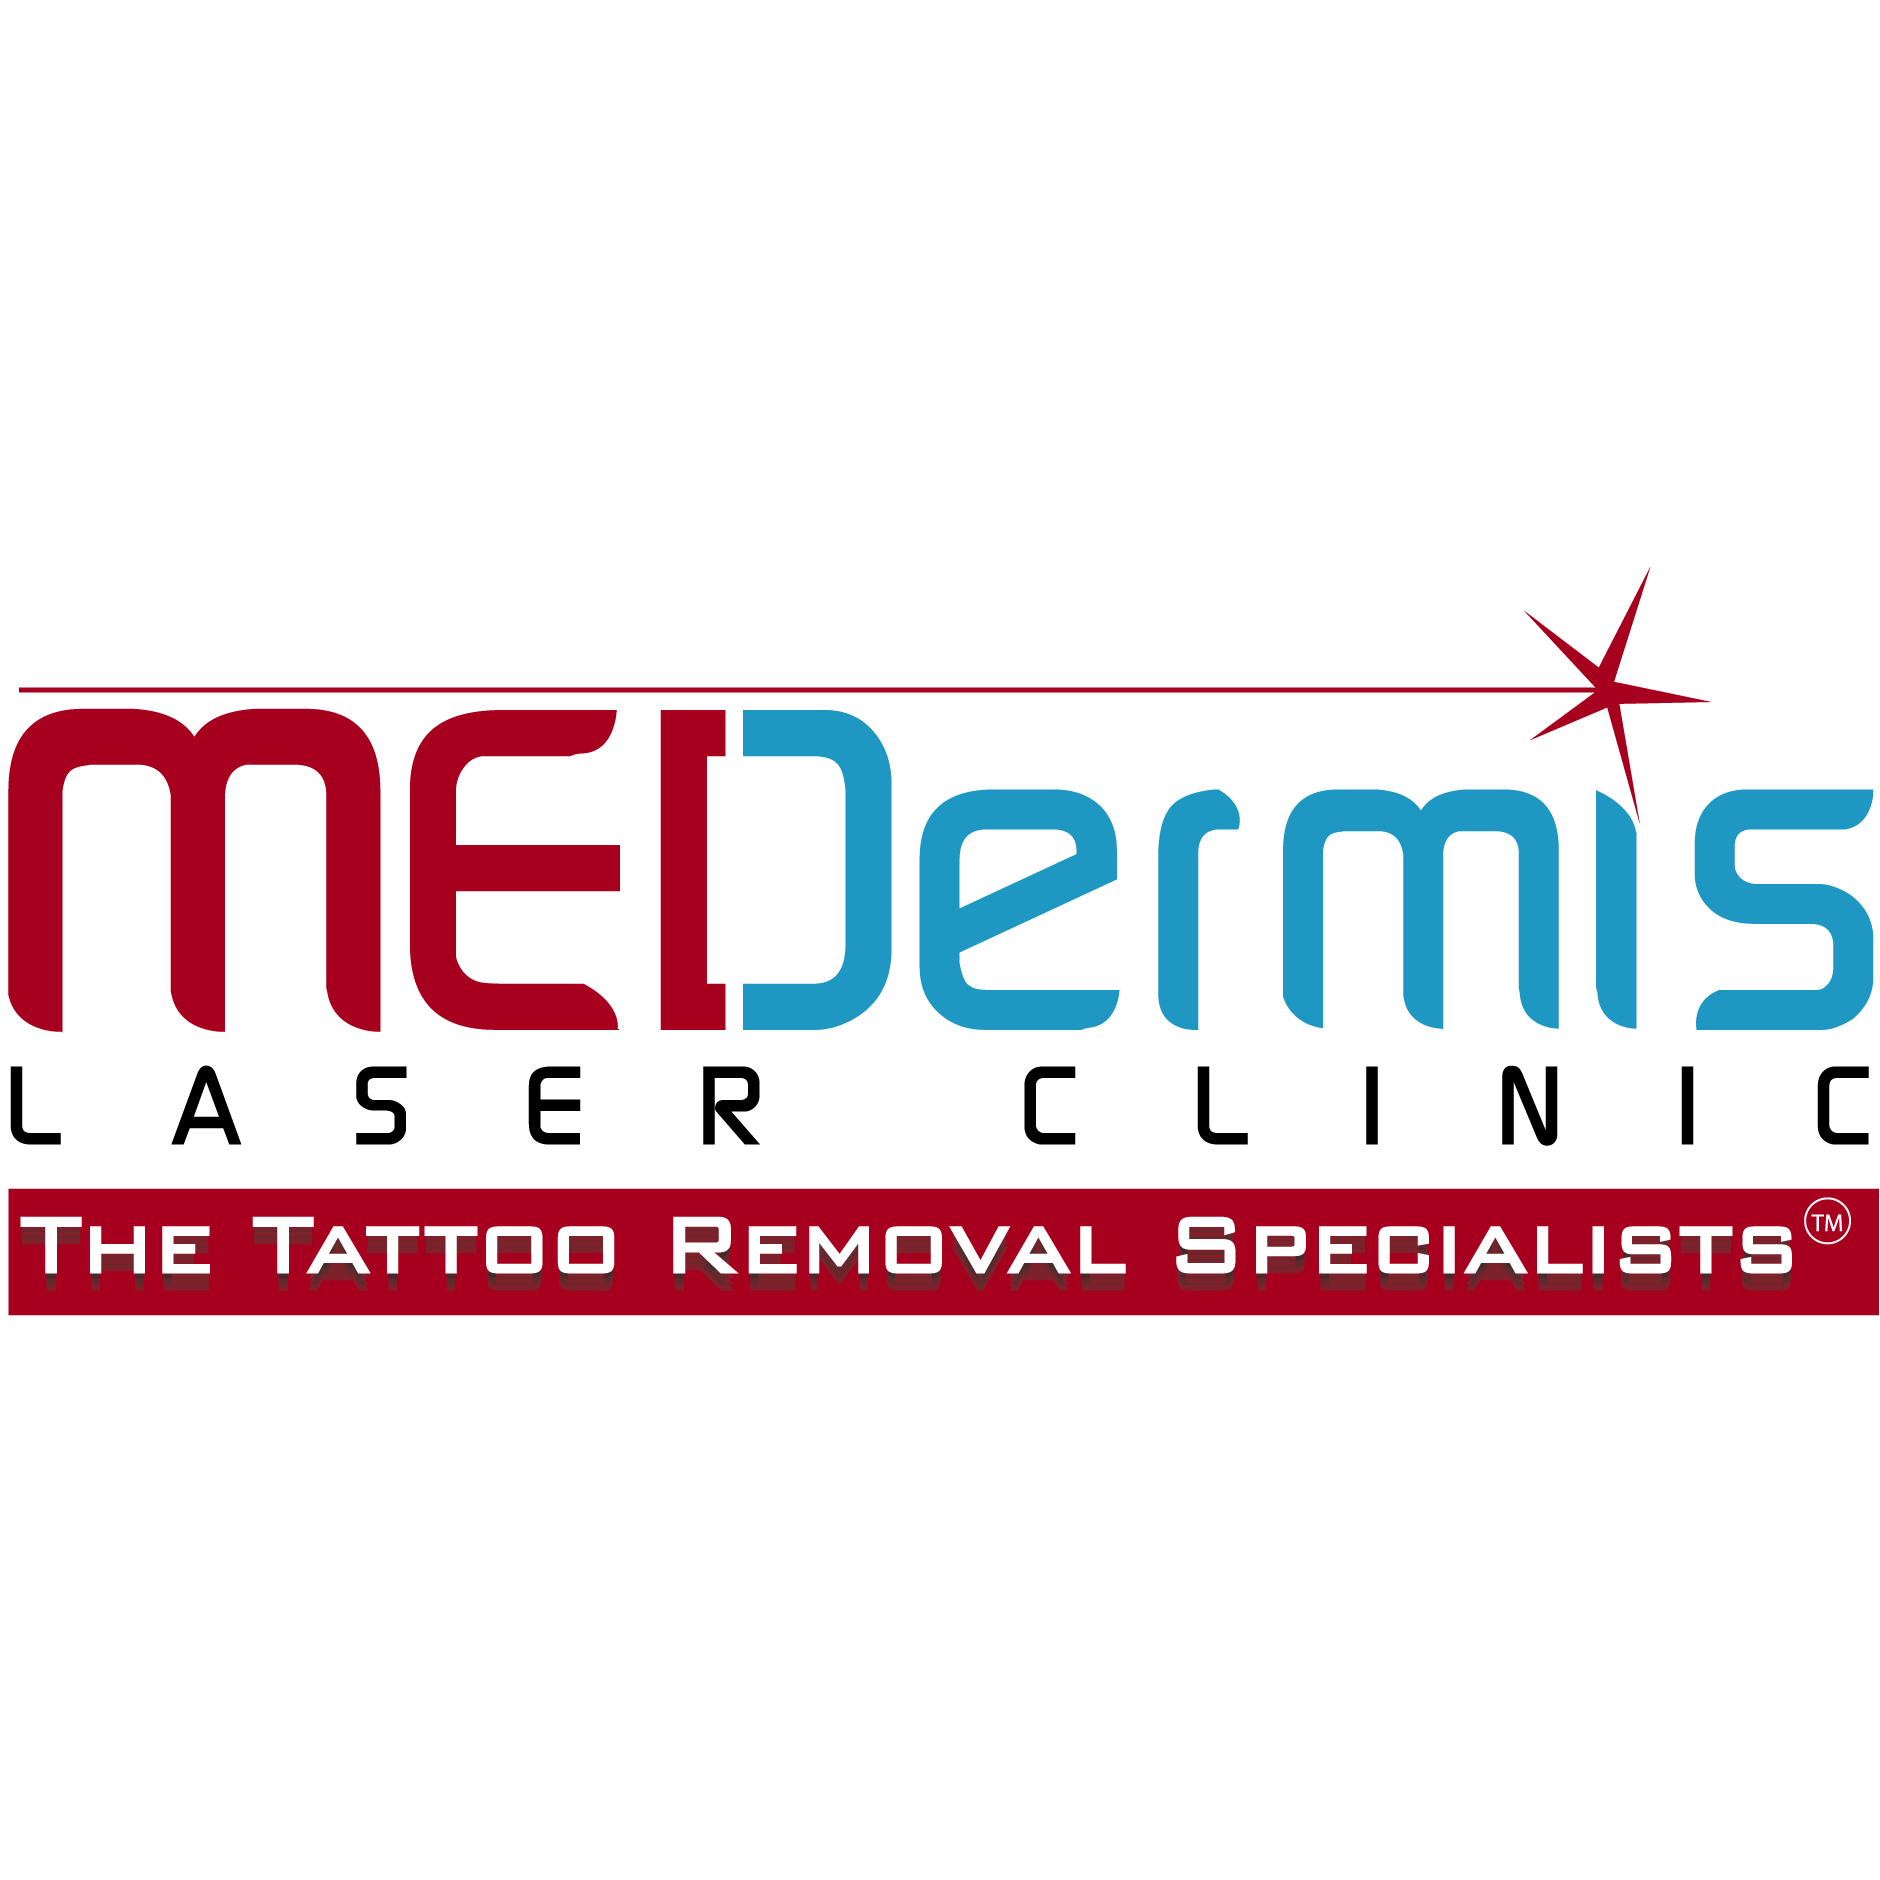 Medermis tattoo removal coupons near me in san antonio for Tattoo shops near me san antonio